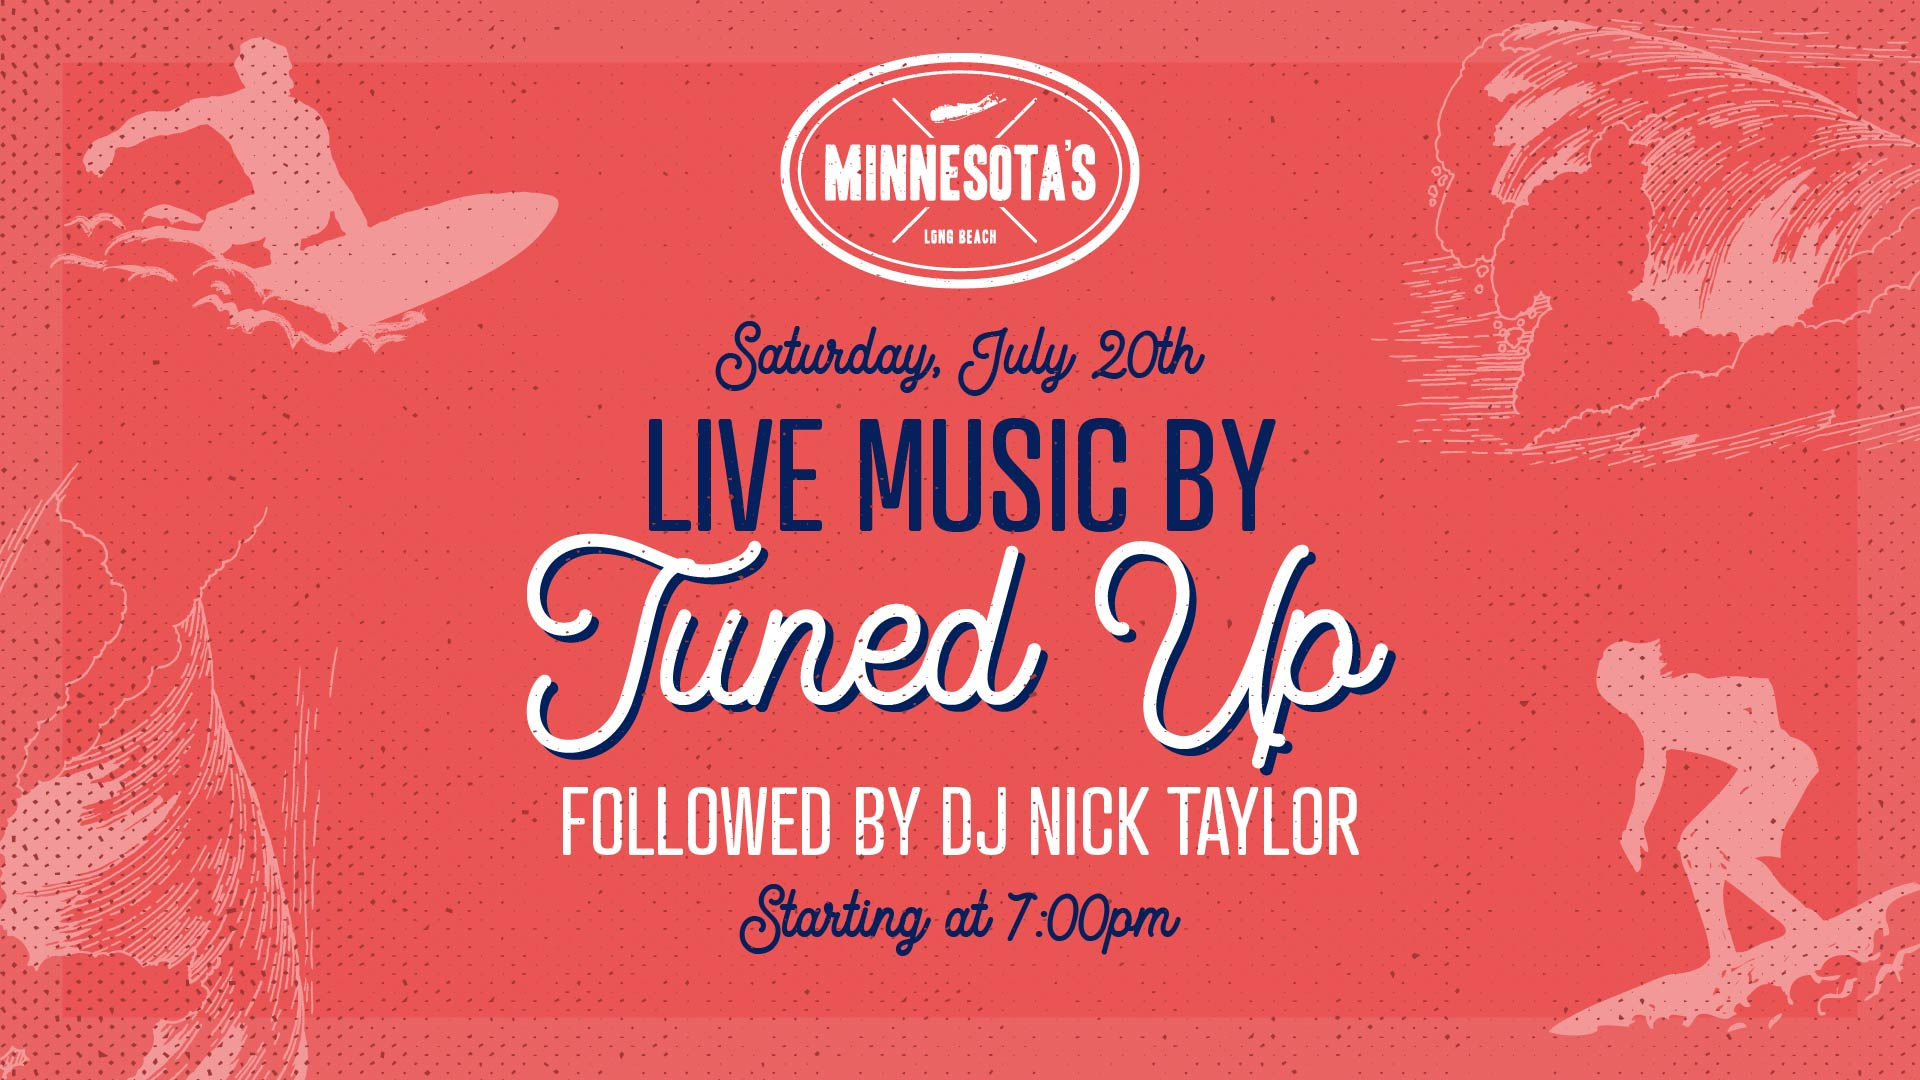 flyer for live music by tuned up followed by dj nick taylor at minnesotas on july 20th at 7pm